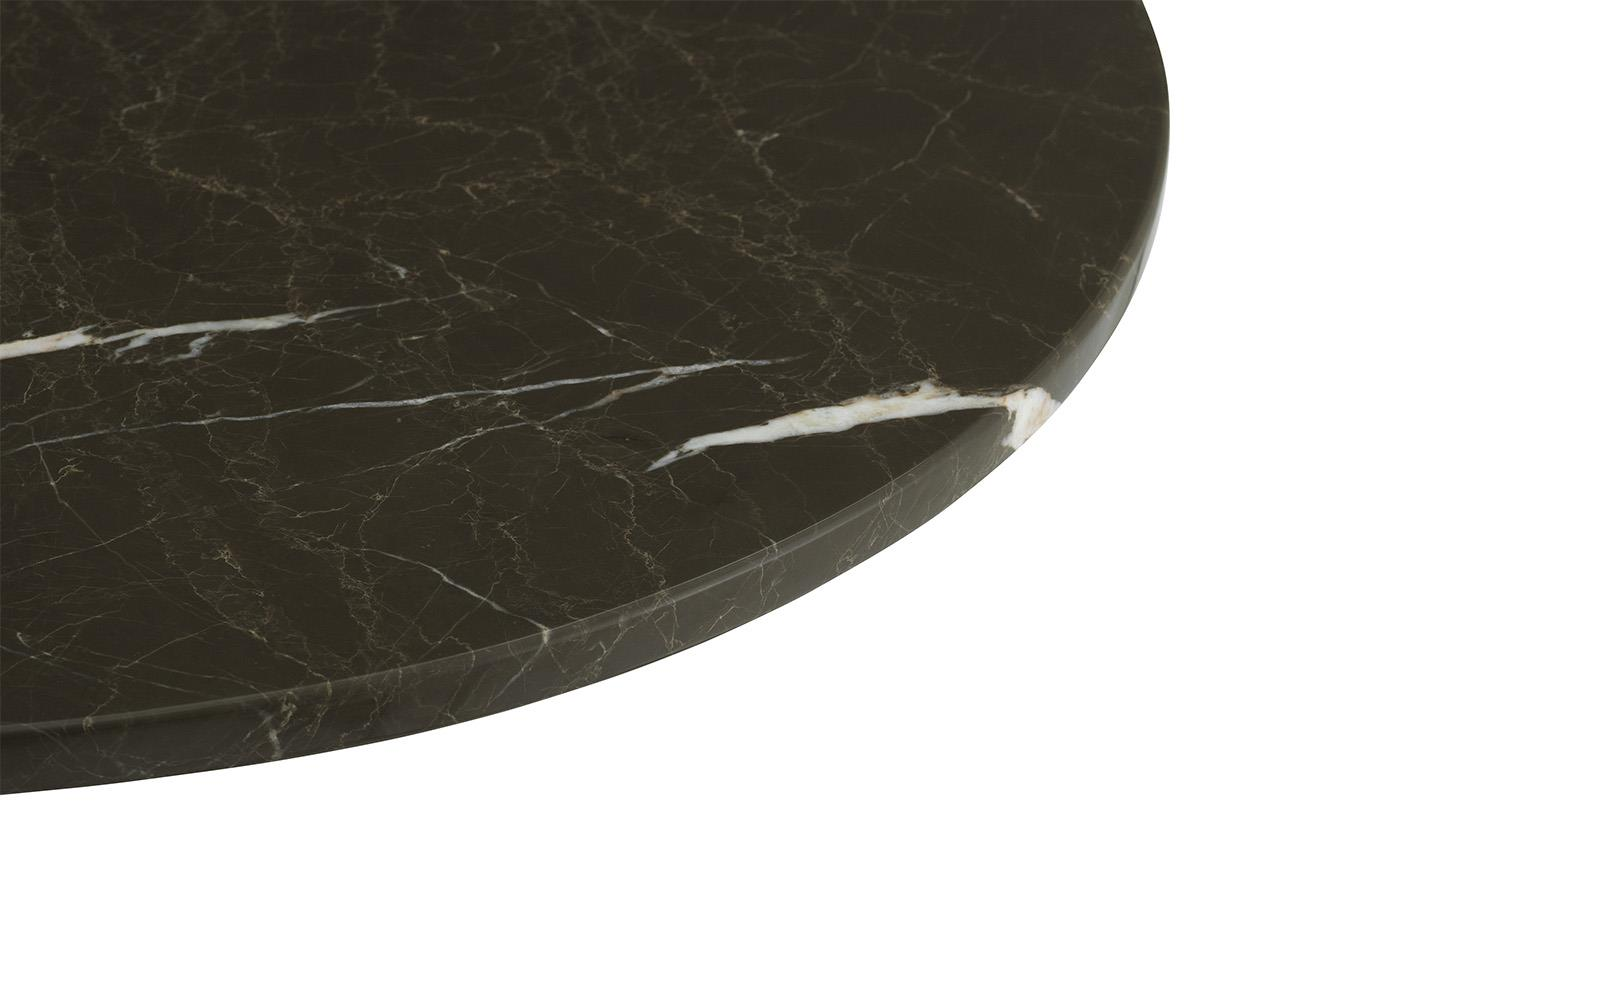 Form Caf Table Marble 70xH65 cm2